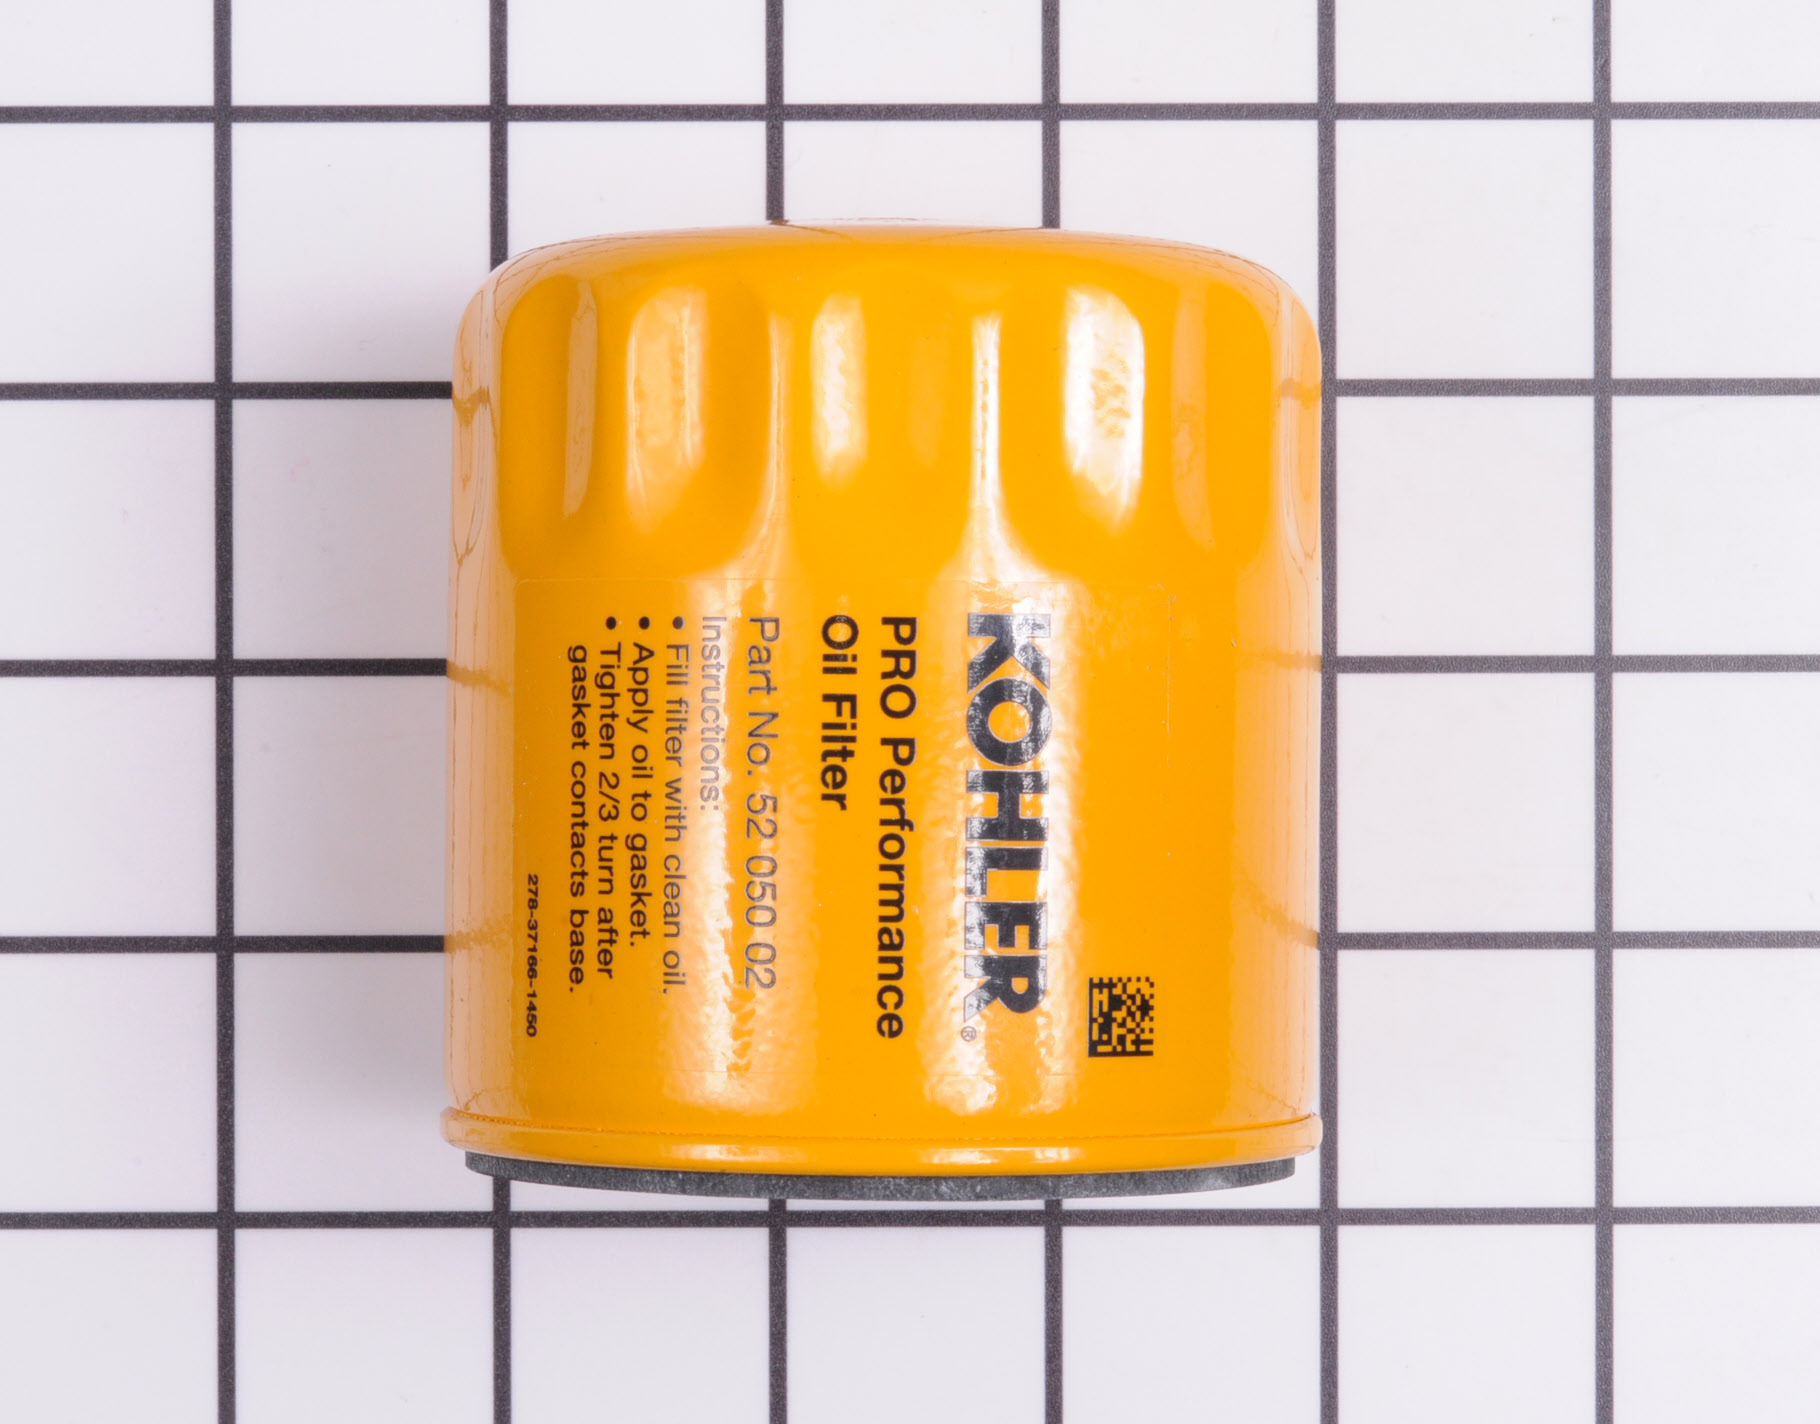 Exmark Lawn Mower Part # 52 050 02-S - Oil Filter photo